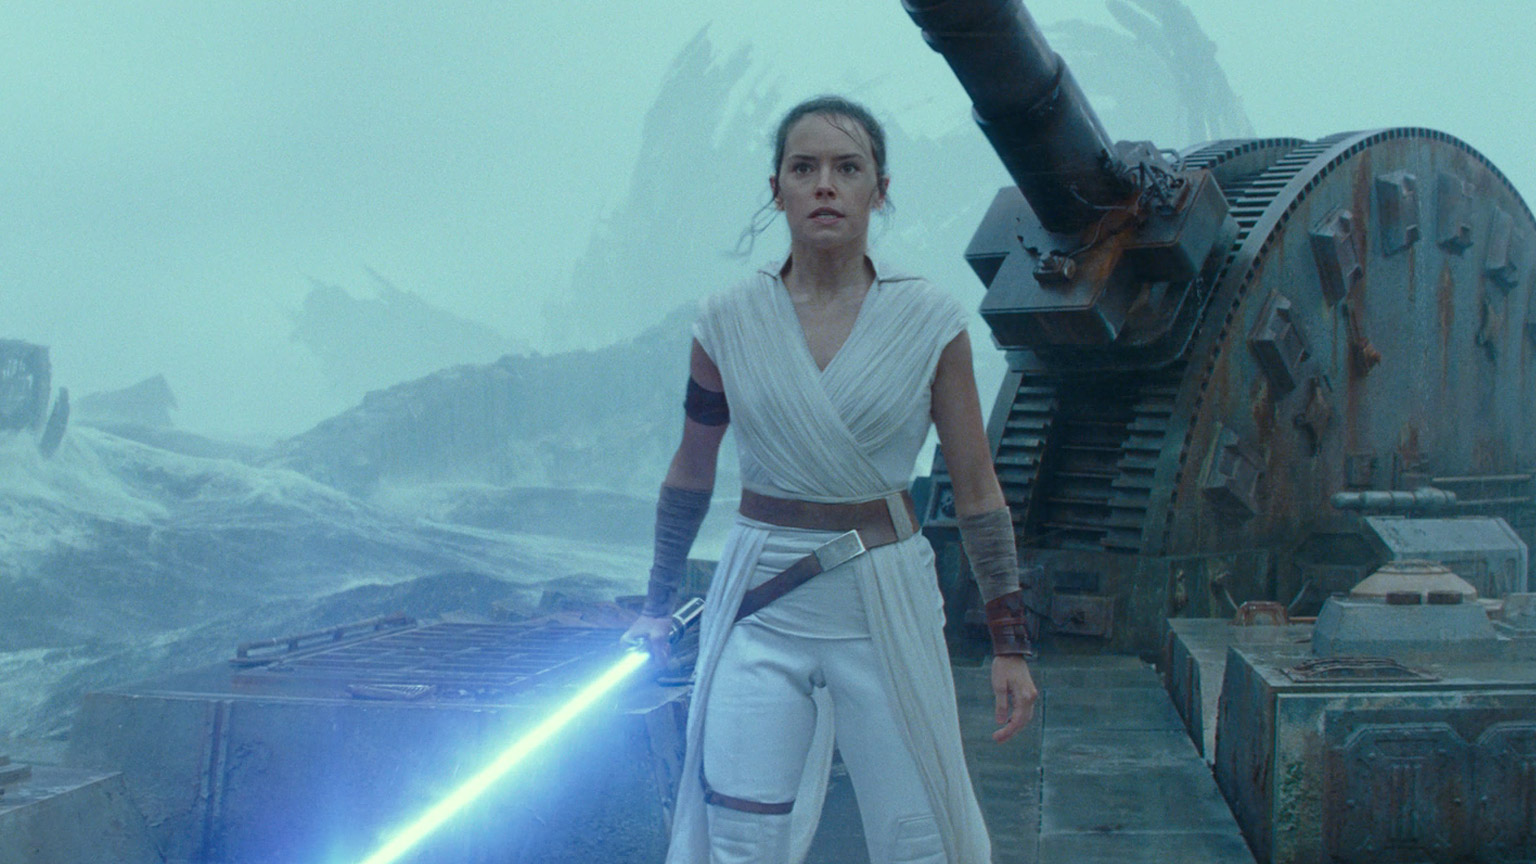 Rey in Star Wars: The Rise of Skywalker